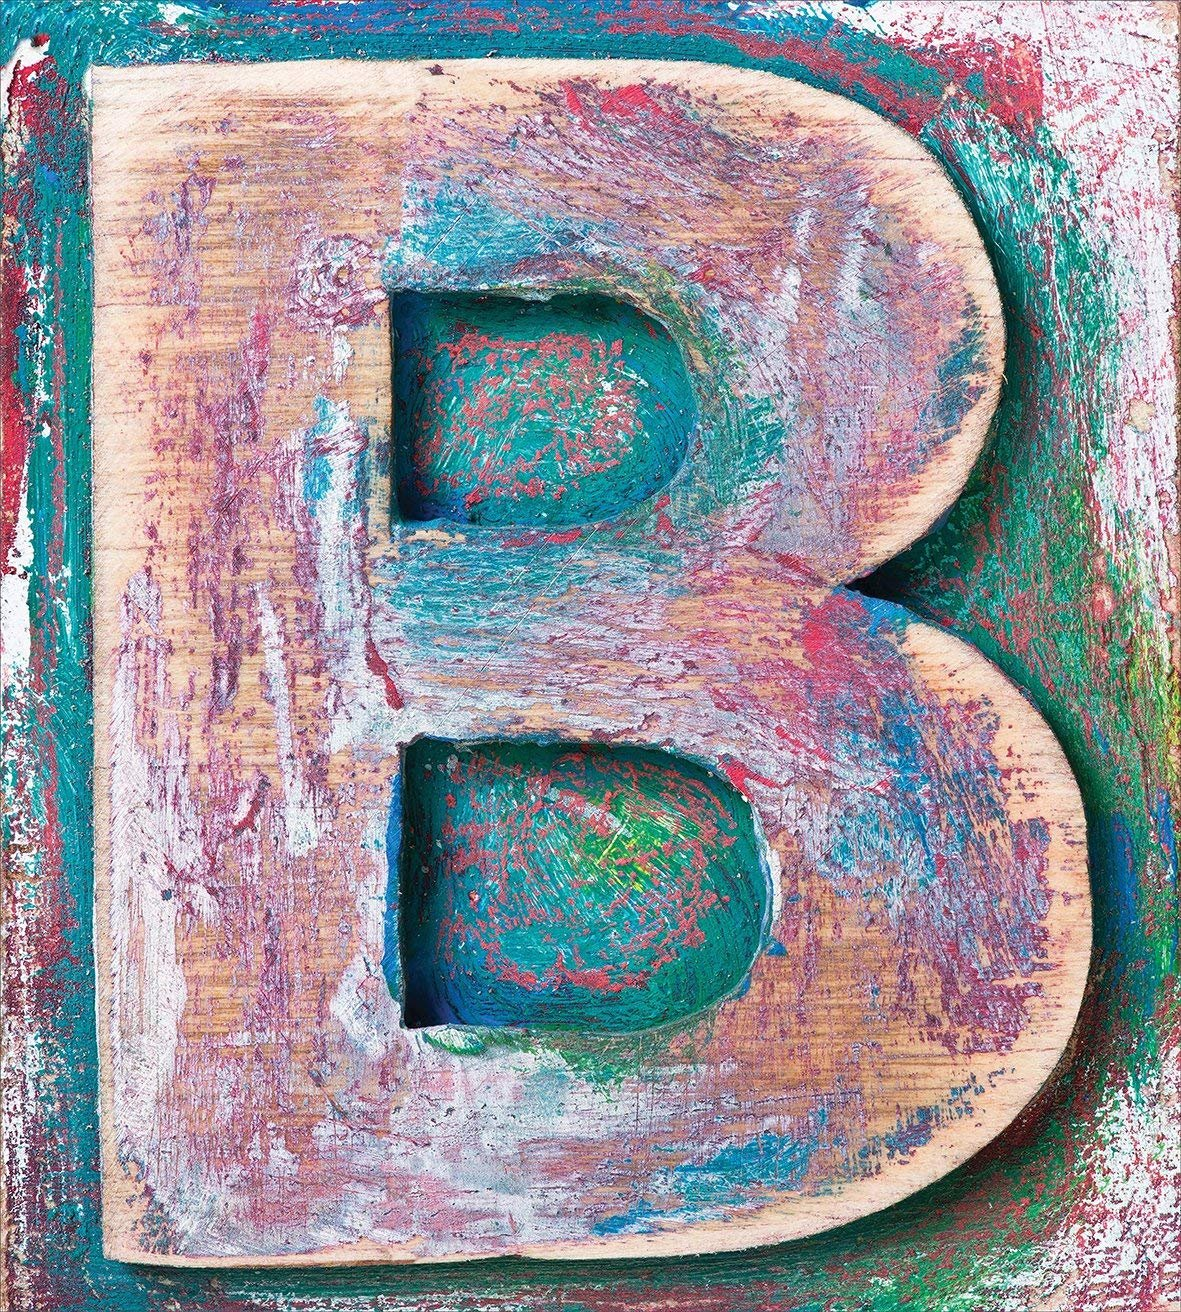 Letter B Bedding Duvet Cover Sets for Children/Adult/Kids/Teens Twin Size, Old Fashioned Print Method Wood Block Alphabet ABC Type Worn Capital B, Hotel Luxury Decorative 4pcs, Teal Ivory Dark Coral by Family Decor (Image #2)